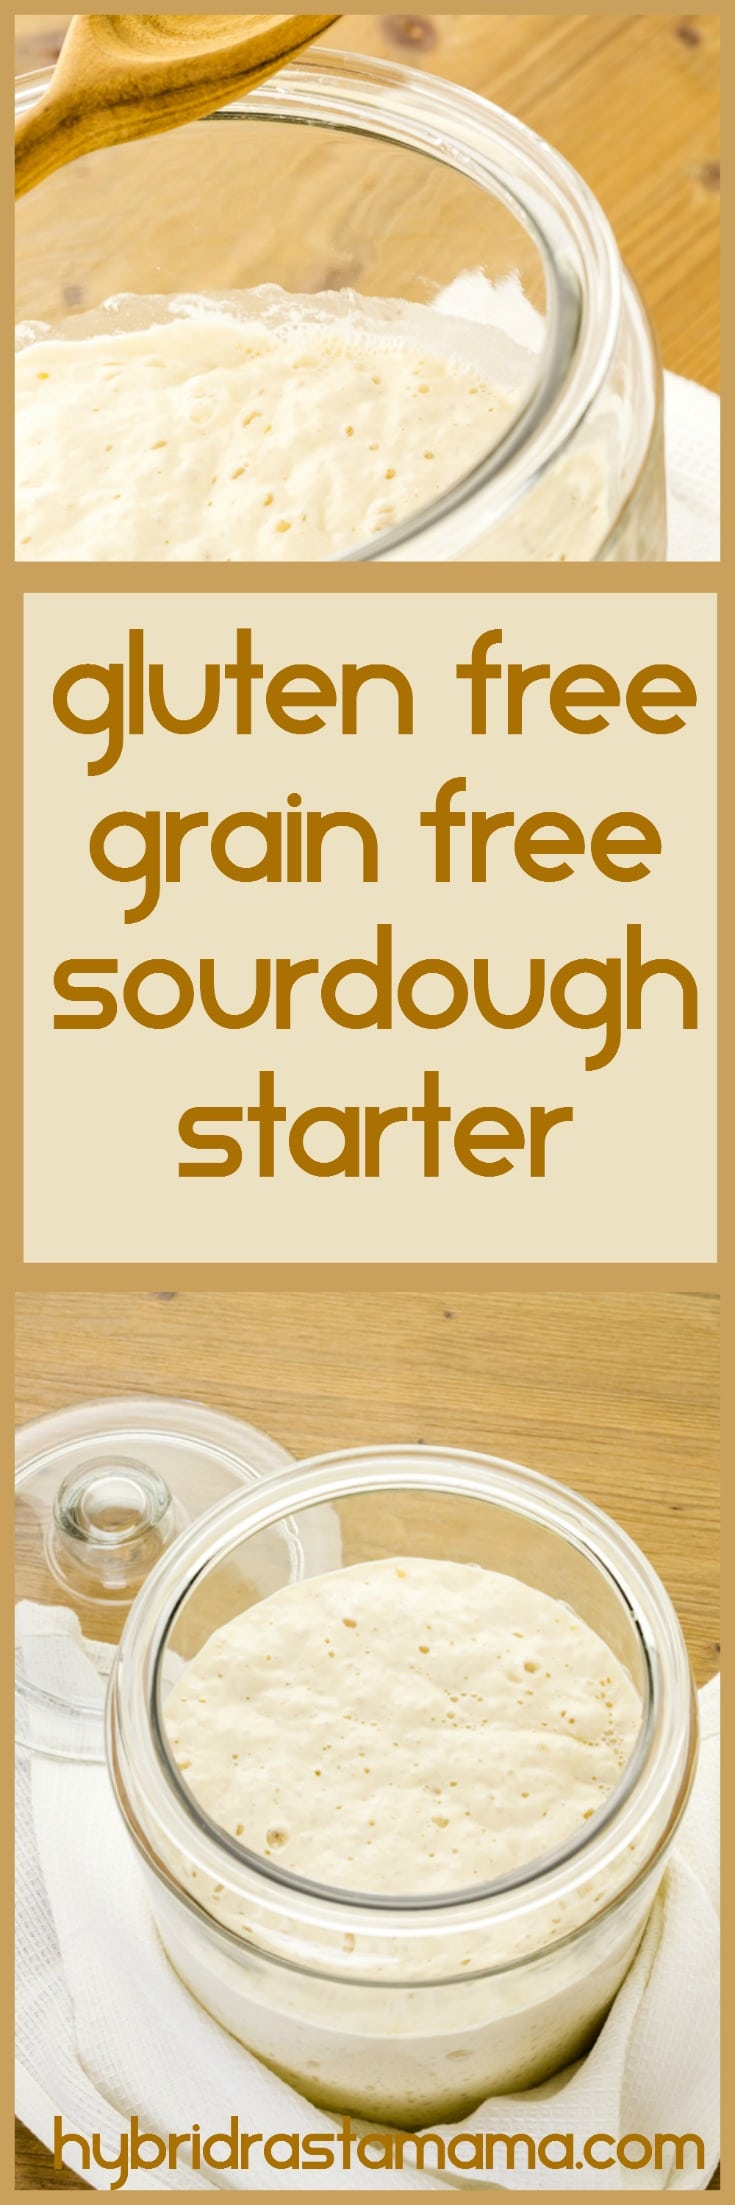 This Gluten Free, Grain Free Sourdough Starter is so easy anyone can make it. Plus it makes the perfect base for gluten free, grain free sourdough bread. Grab the recipe from HybridRastaMama.com #sourdough #sourdoughbread #bread #breadrecipe #homemadebread #glutenfreebread #glutenfreerecipes #recipes